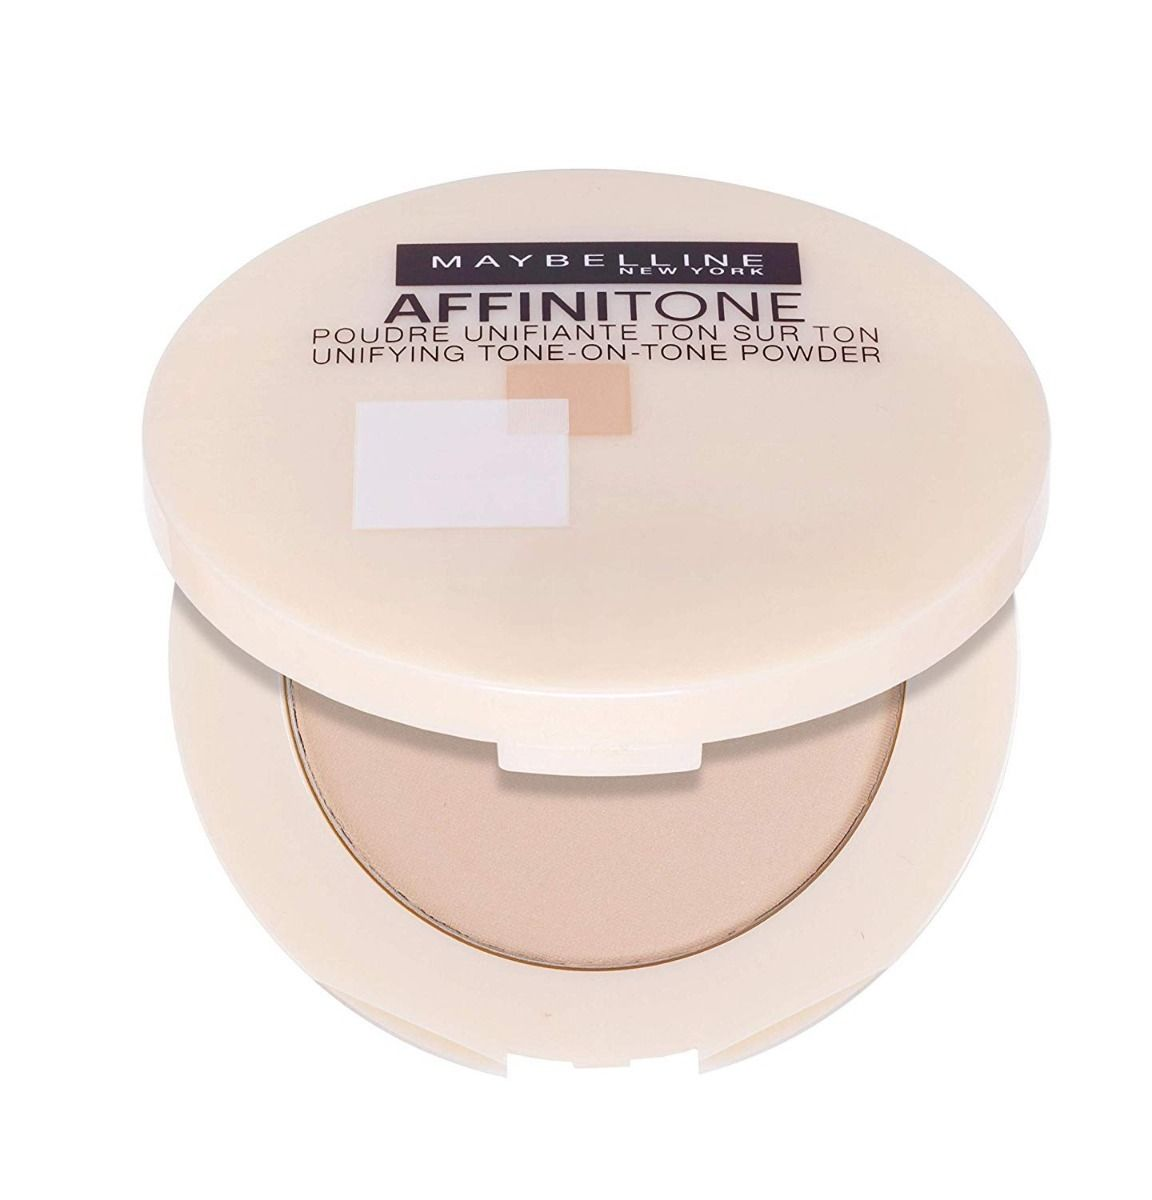 Maybelline Affinitone Powder 24 Golden Beige